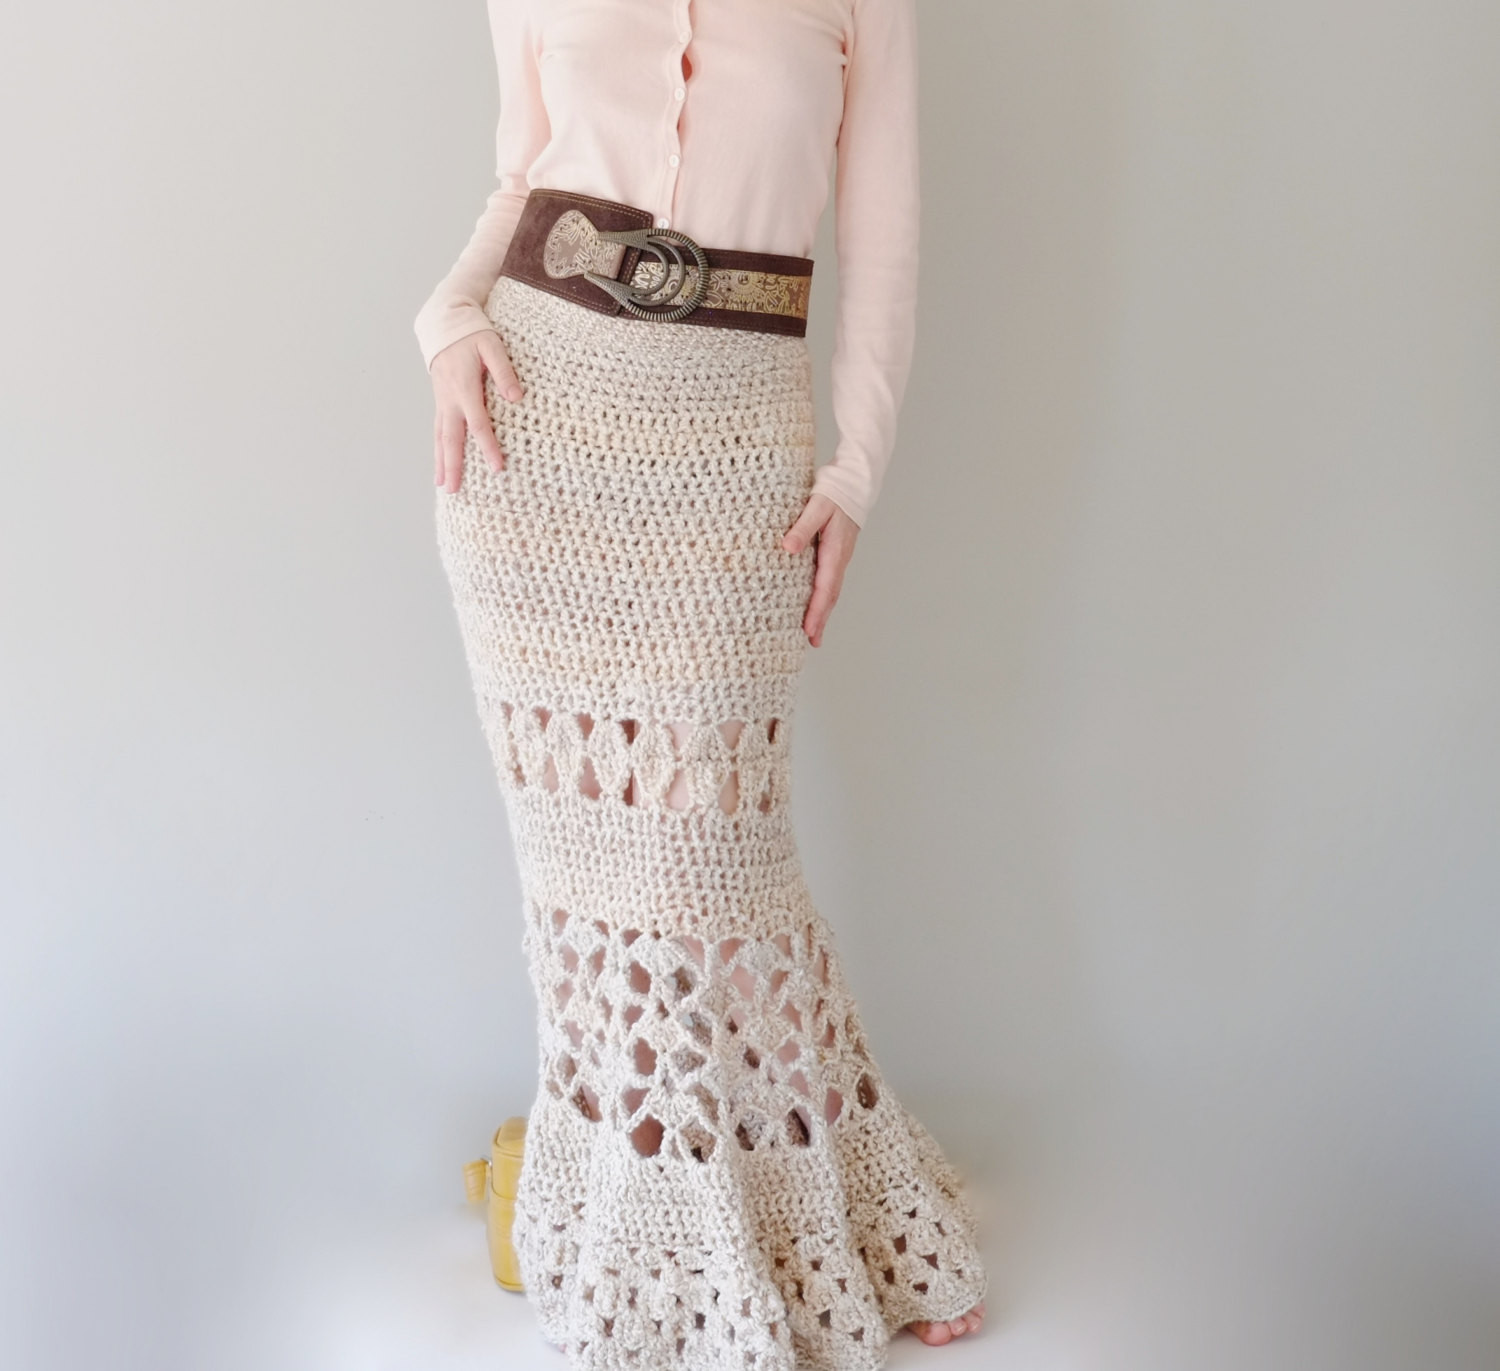 Crochet Skirt Patterns Beautiful Pattern for Maxi Skirt Crochet Long Skirt Crochet Pattern Of Fresh 47 Ideas Crochet Skirt Patterns